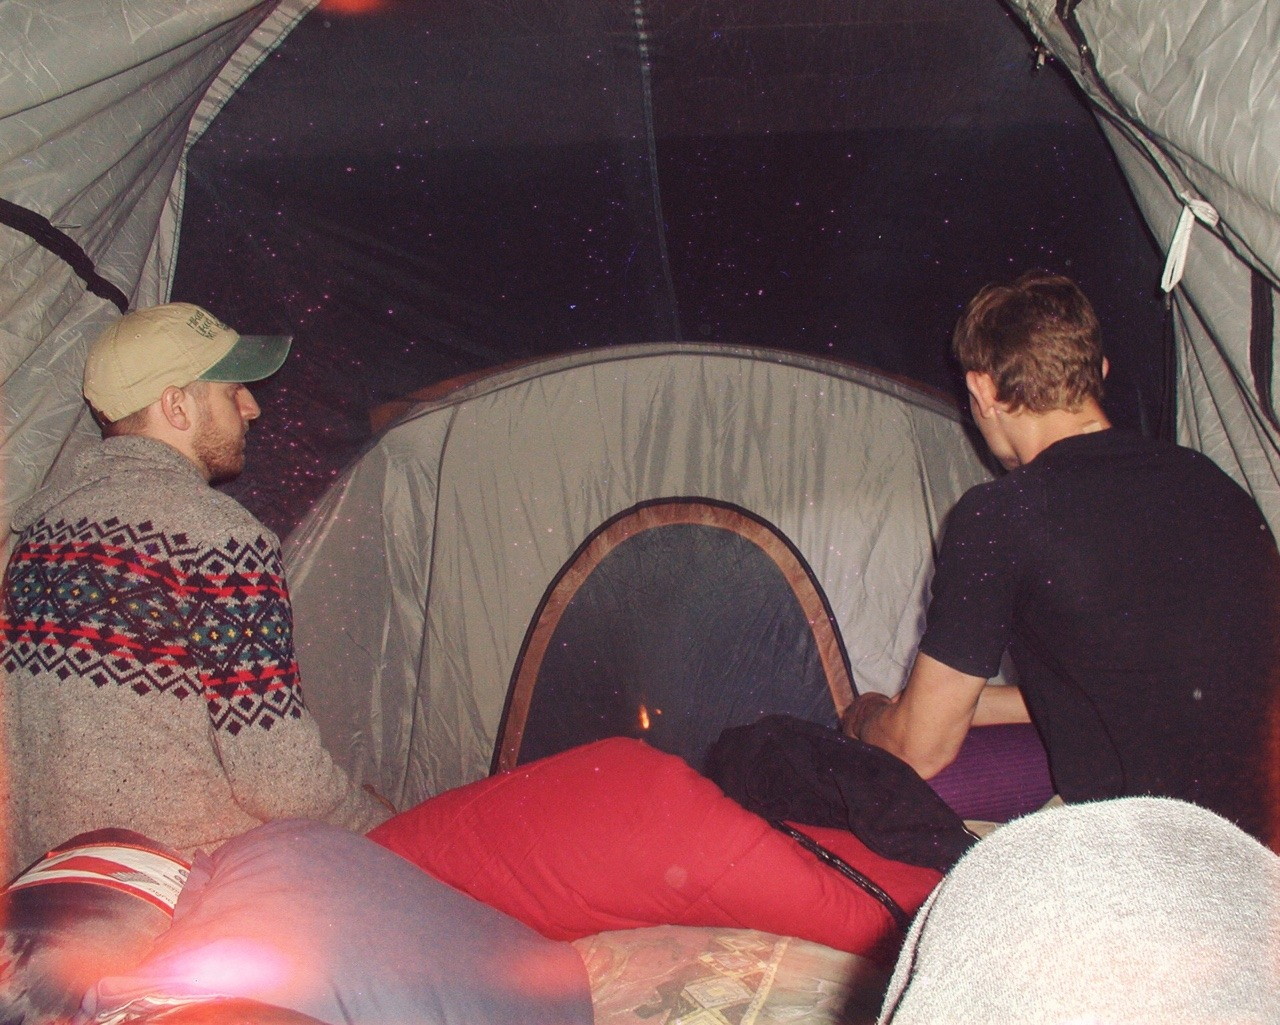 The oversided tent situation ended up being kind of cool. Photo:  Nick Moeller